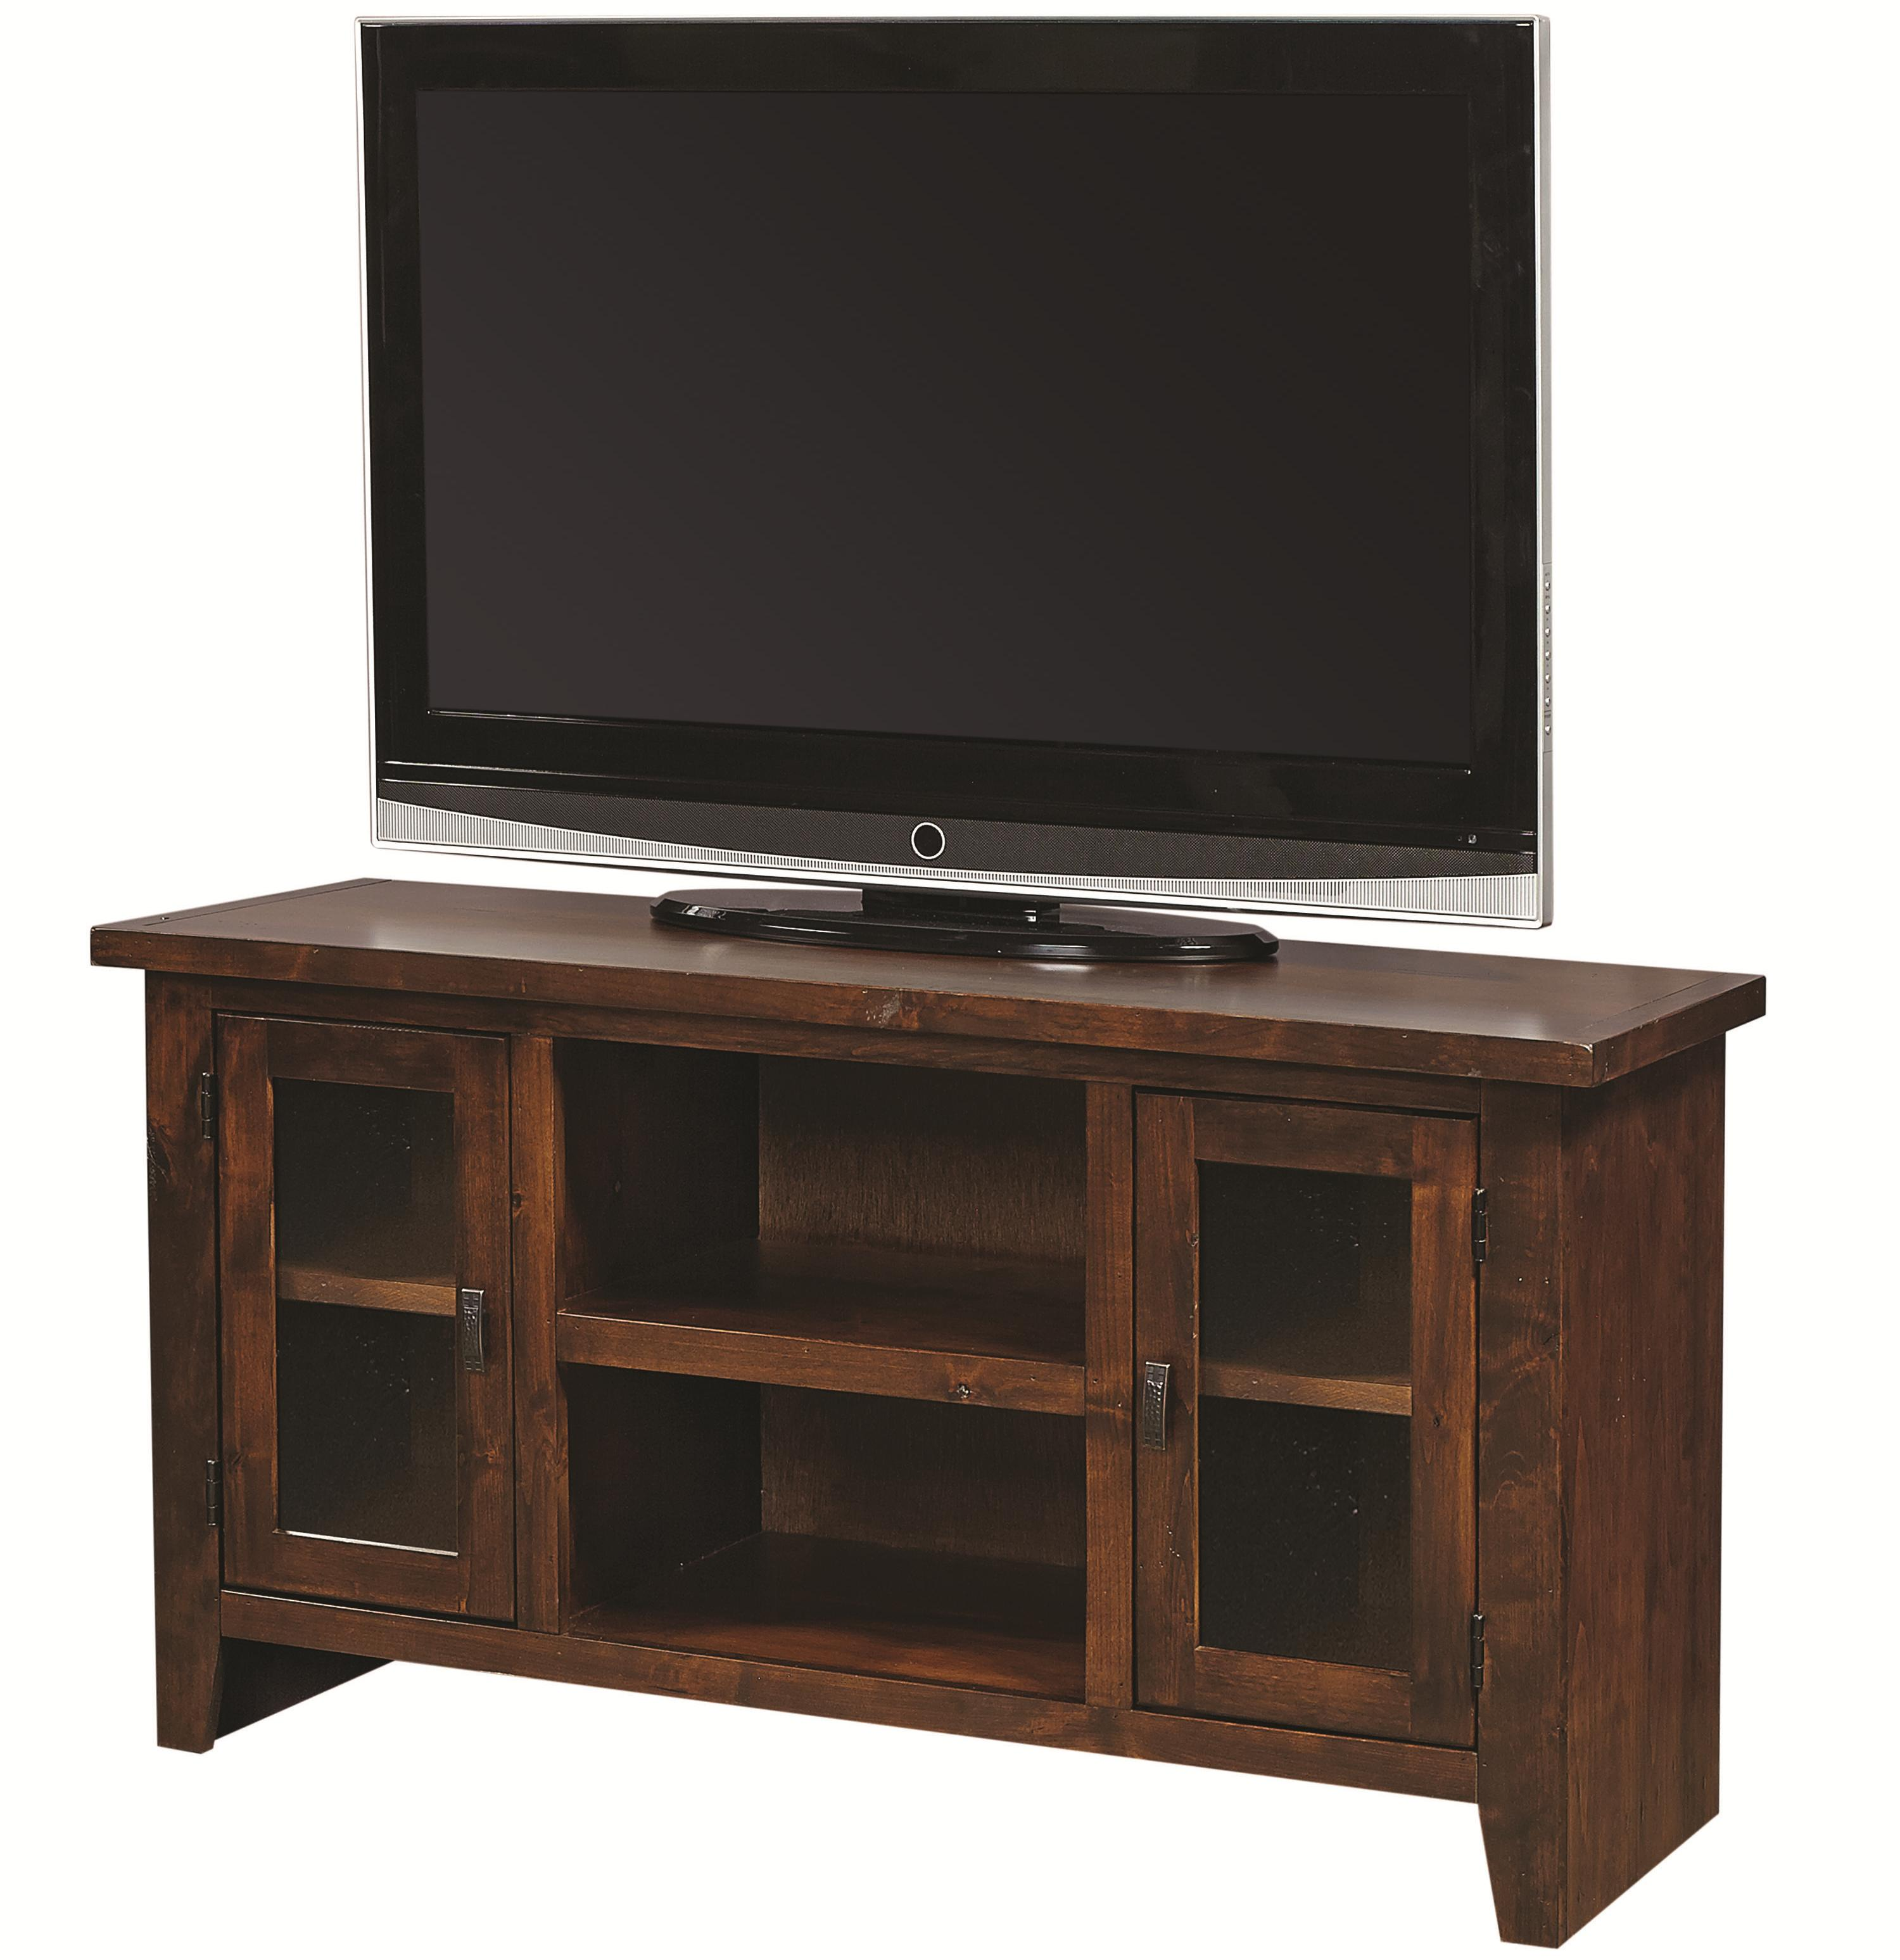 "Aspenhome Alder Grove 50"" Console with Doors - Item Number: DG1050-TOB"